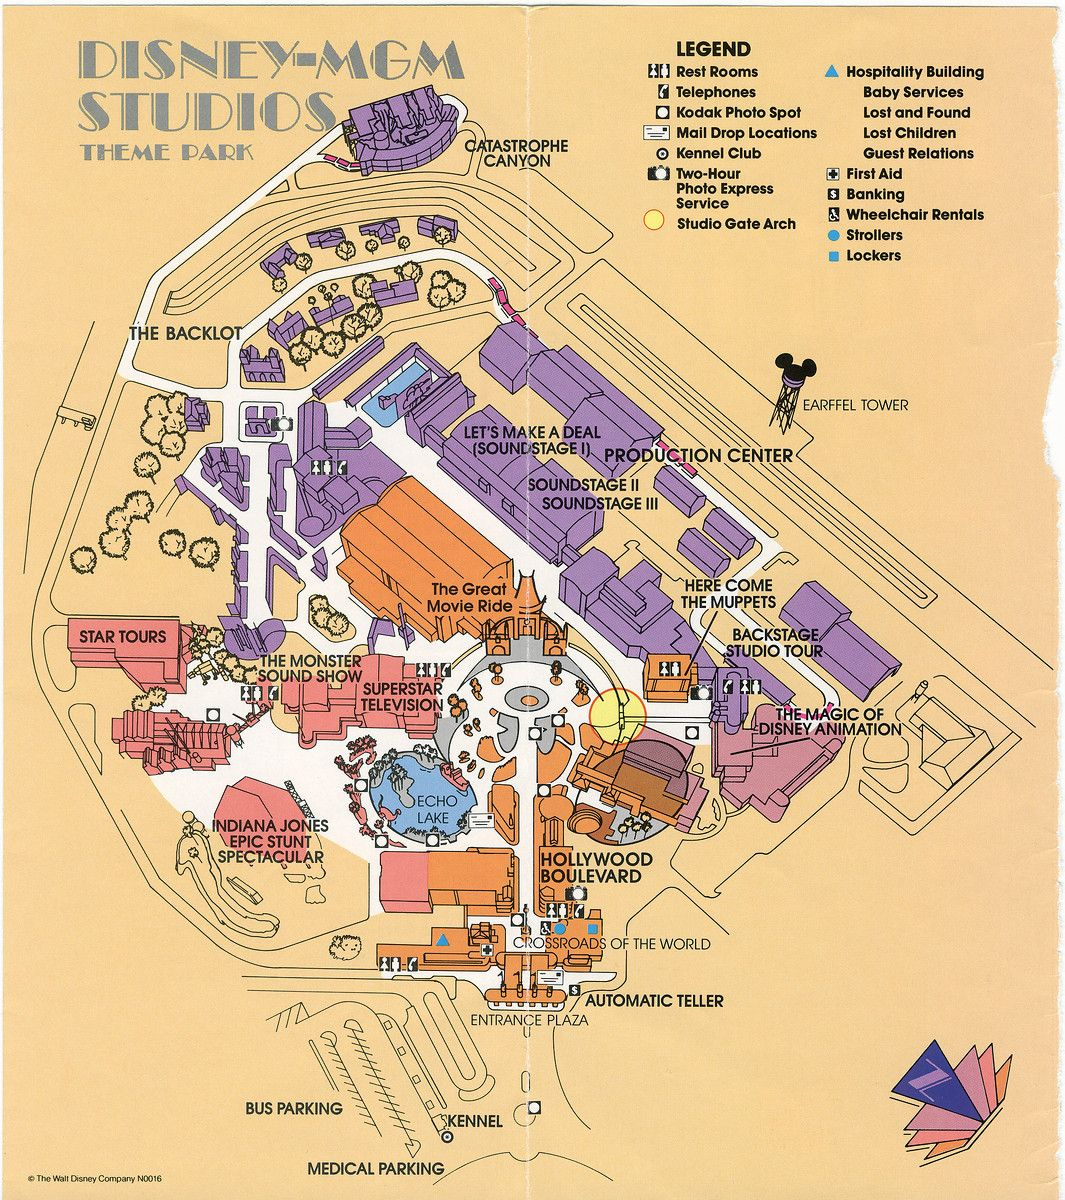 1990 map of Disney MGM Studios which is now known as Hollywood Studios